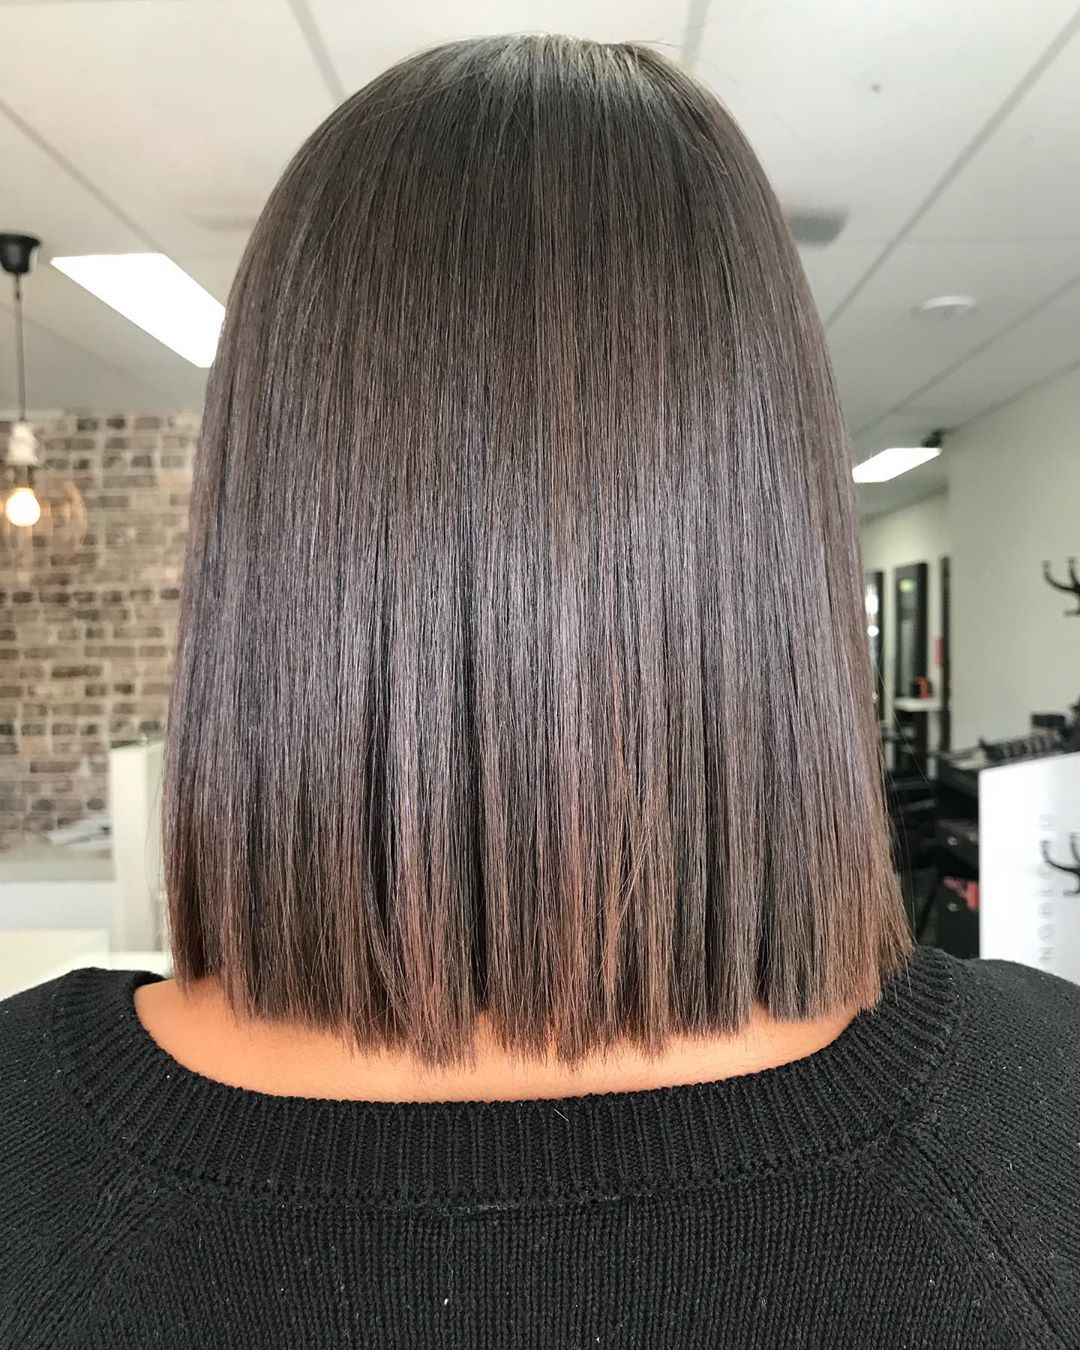 25 Short Brunette Hairstyles And New Trends In 2020 Hair Styles